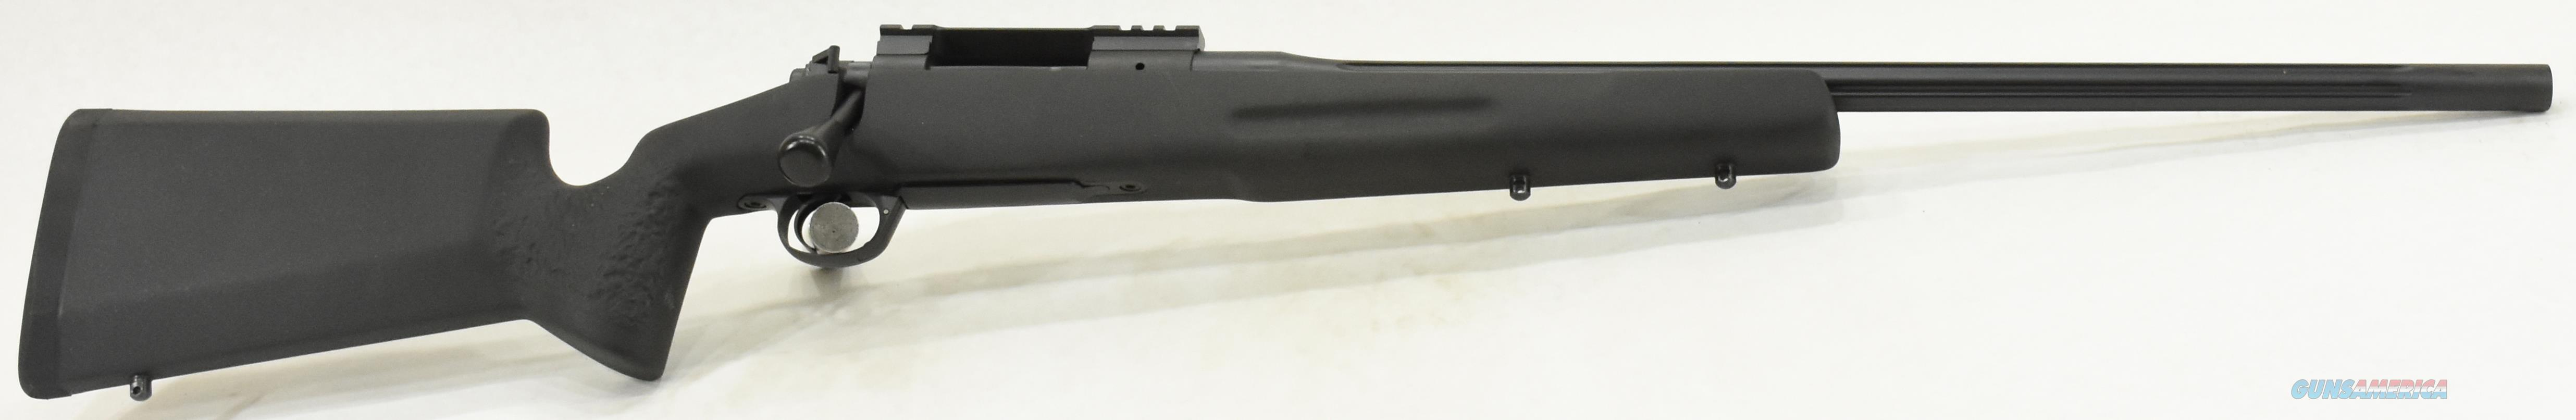 Mountain Ascent OOC 7mm Rem 26In  3000778  Guns > Rifles > Kimber of America Rifles